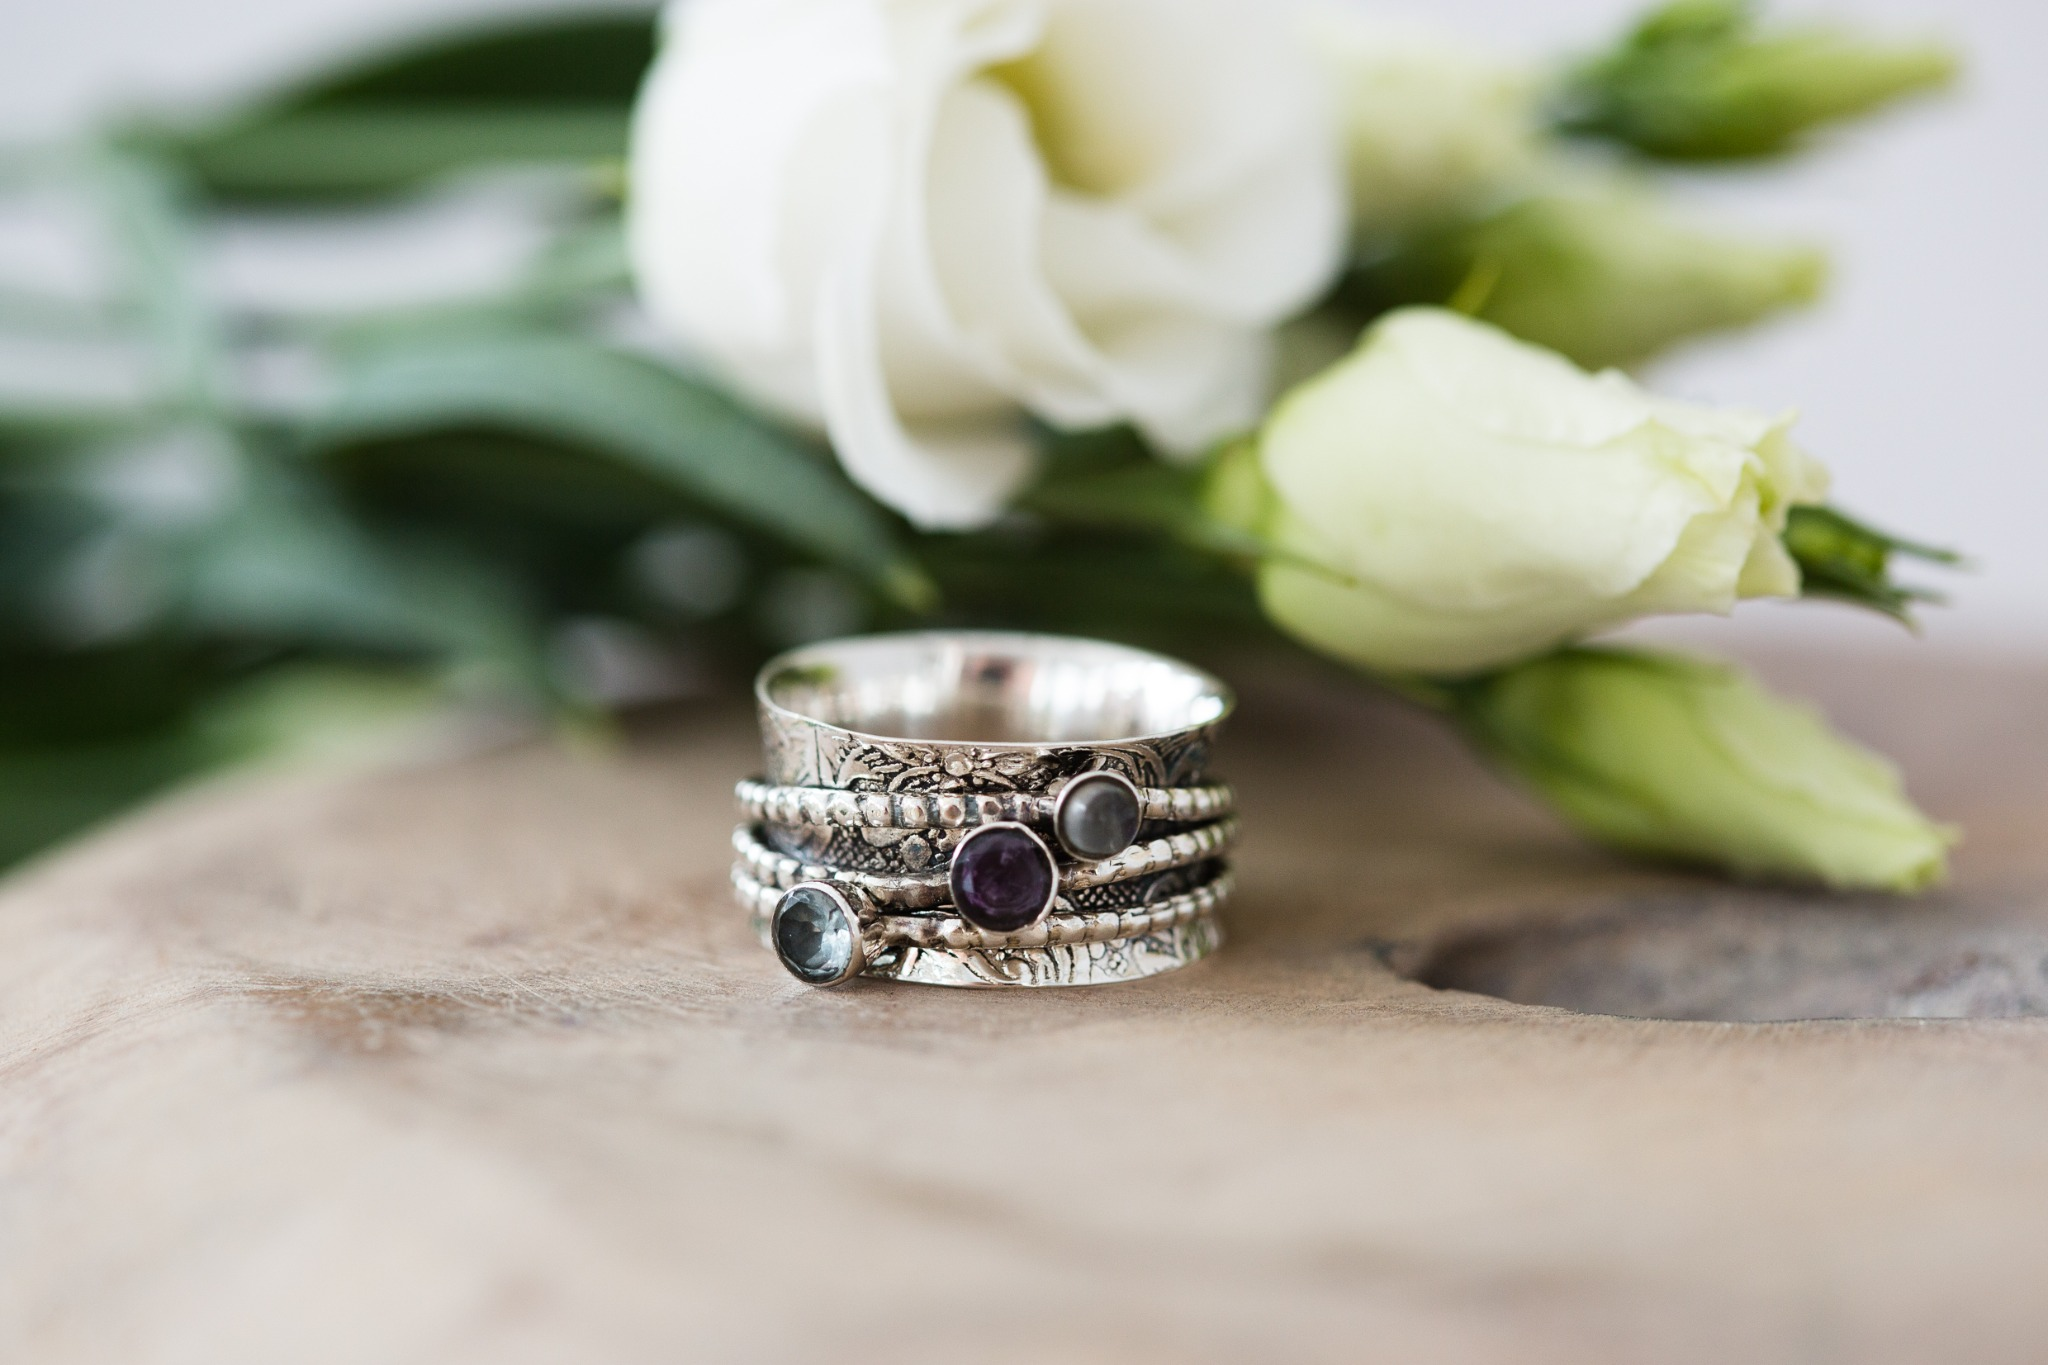 Just Jules 925 Sterling Silver Spinning Ring With Moonstone, Amethyst And Topaz